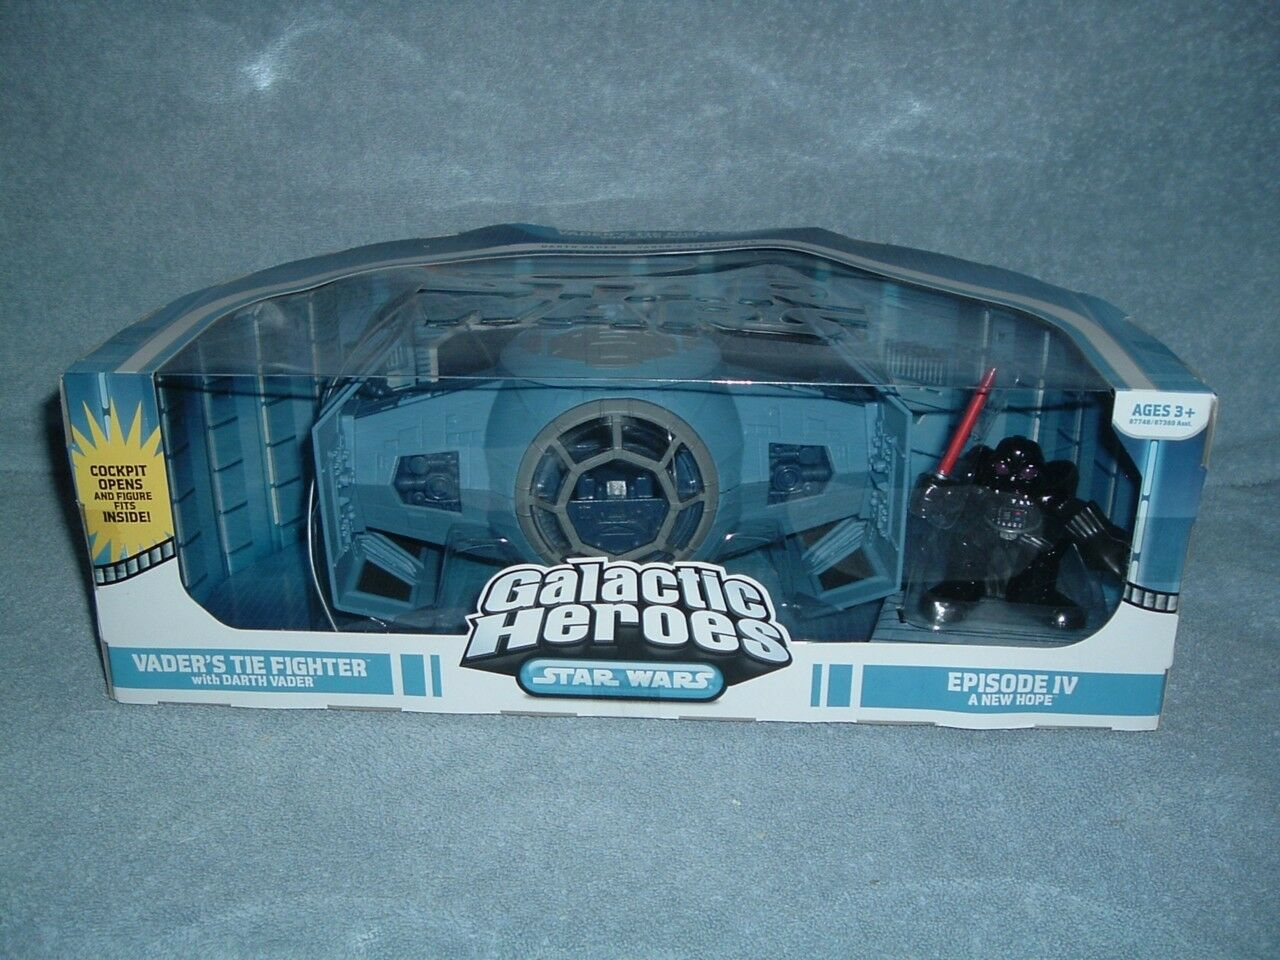 Darth Vader's Tie Fighter Galactic heroes Star Wars un nouvel espoir DGSIM 2008 NOUVEAU